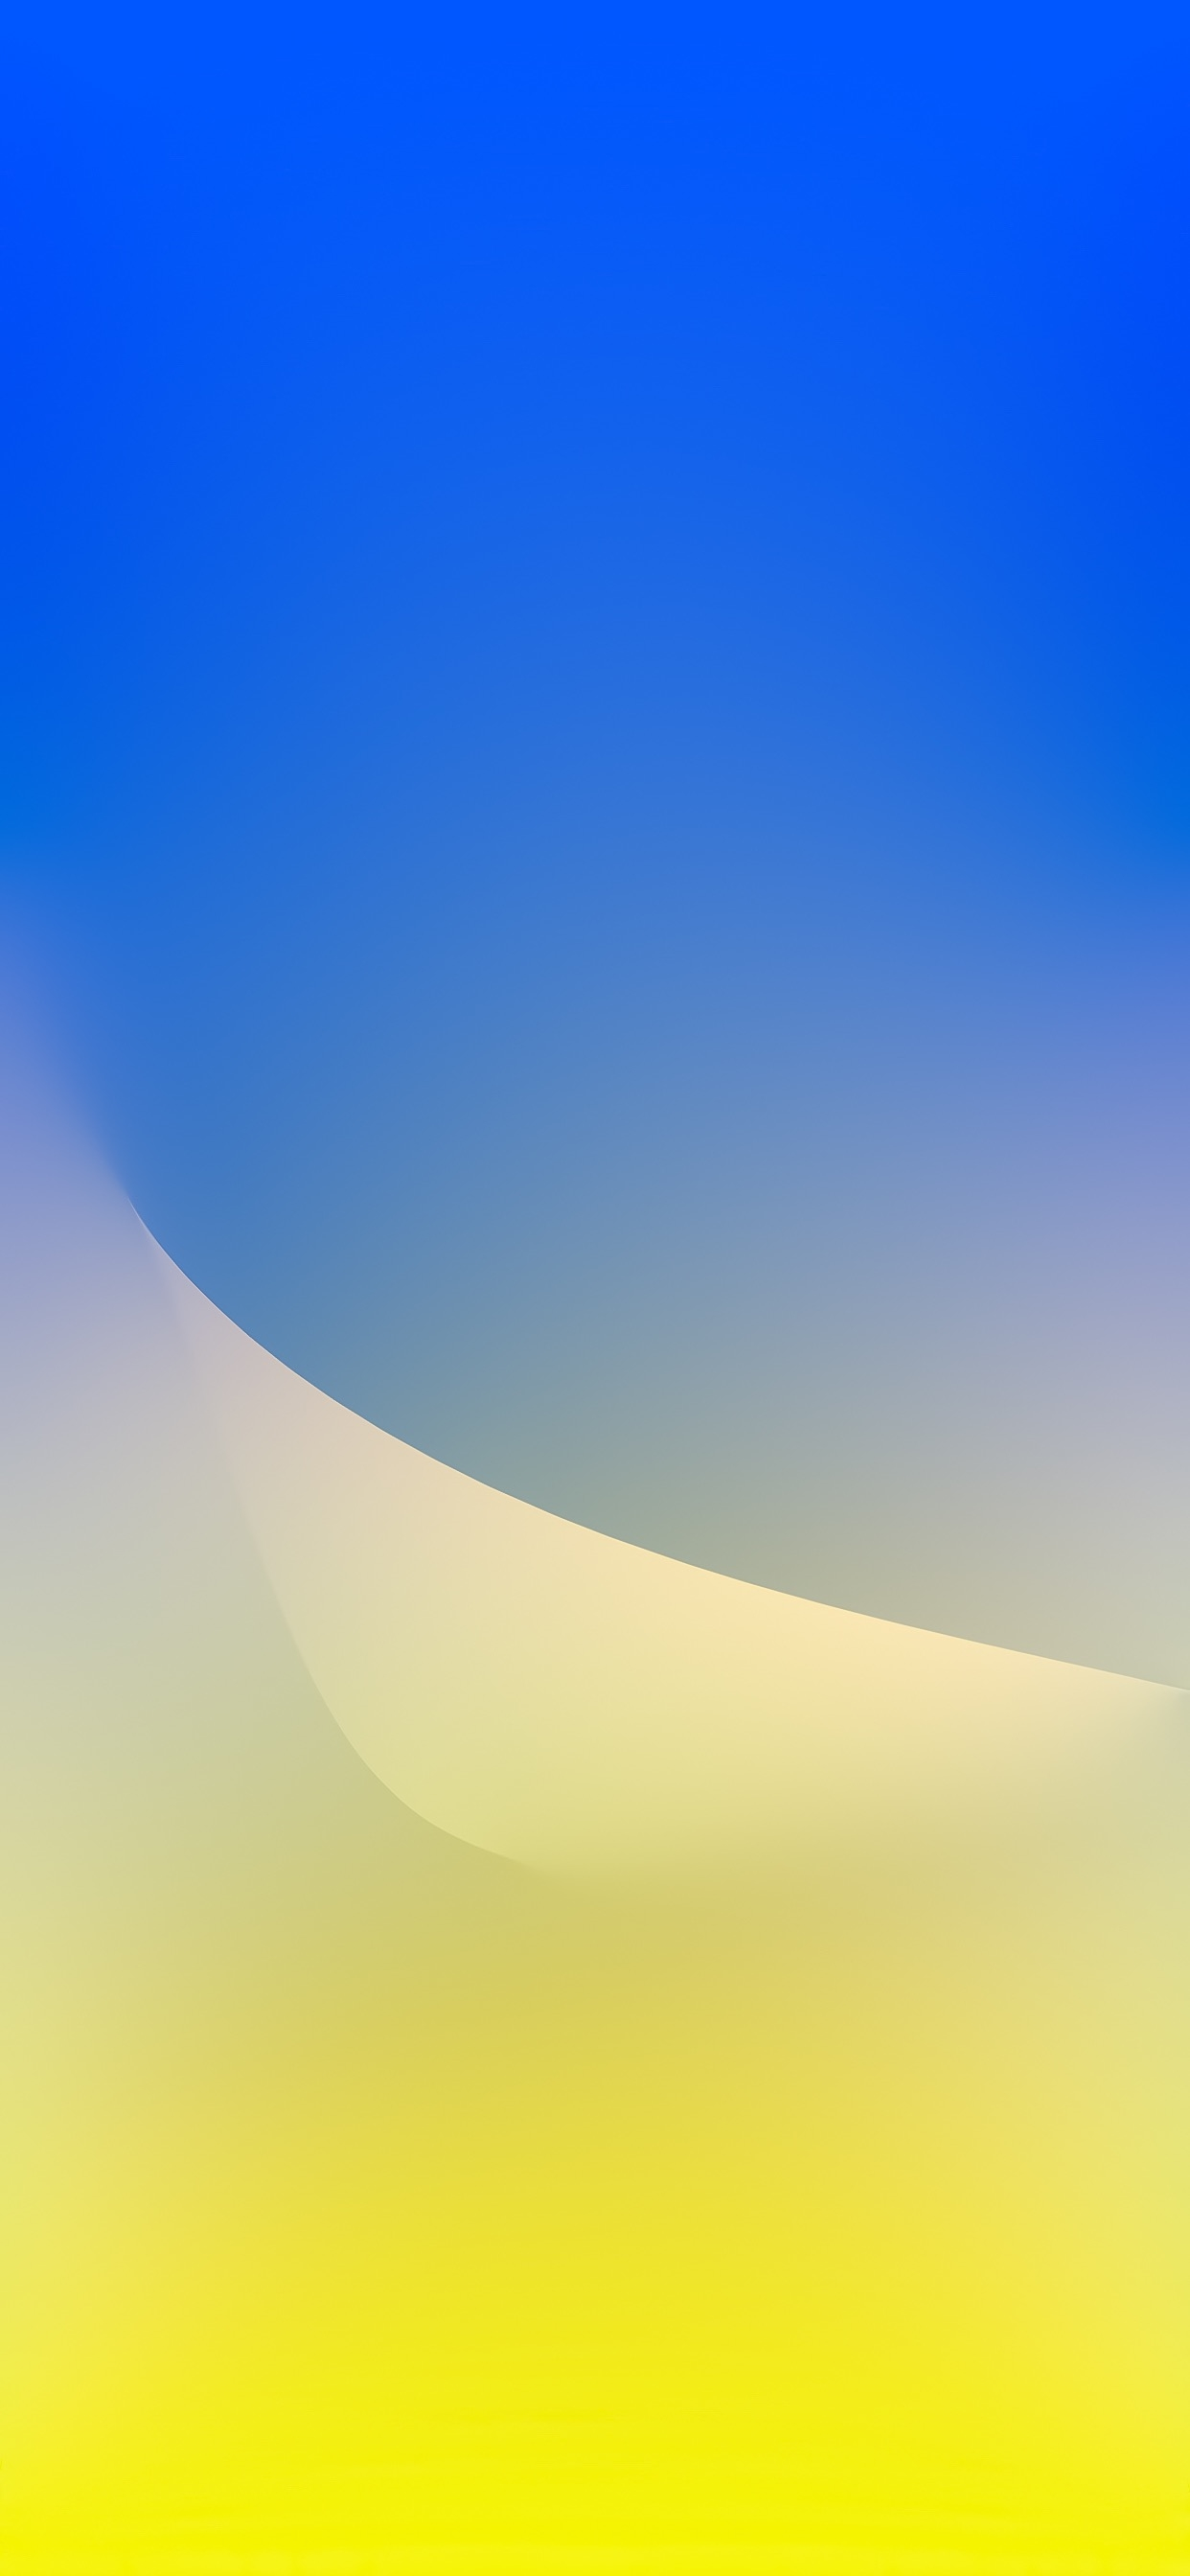 Blue Yellow By Ar72014 On Twitter Galaxy Phone Wallpaper Xiaomi Wallpapers Abstract Iphone Wallpaper